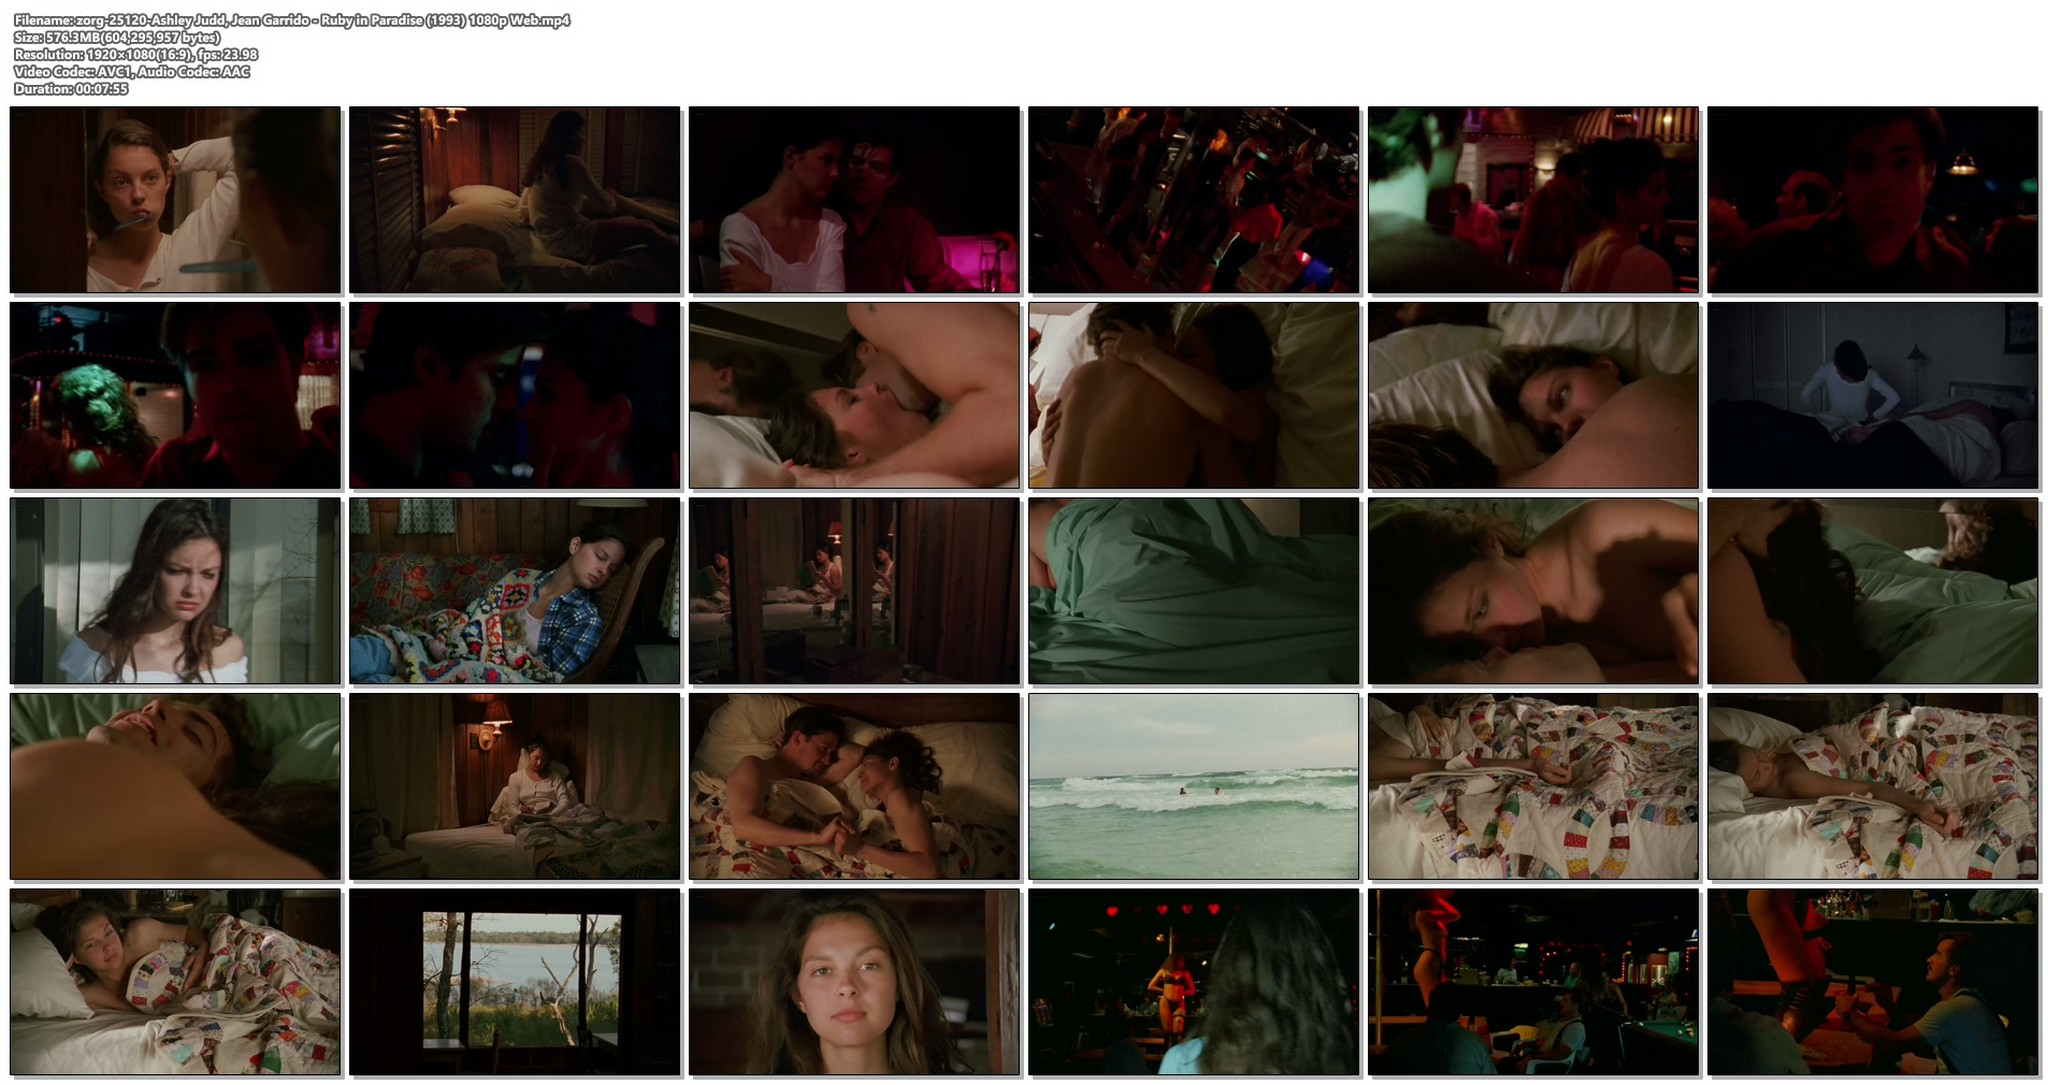 Ashley Judd sexy and some sex Jean Garrido nude Ruby in Paradise 1993 1080p Web 17